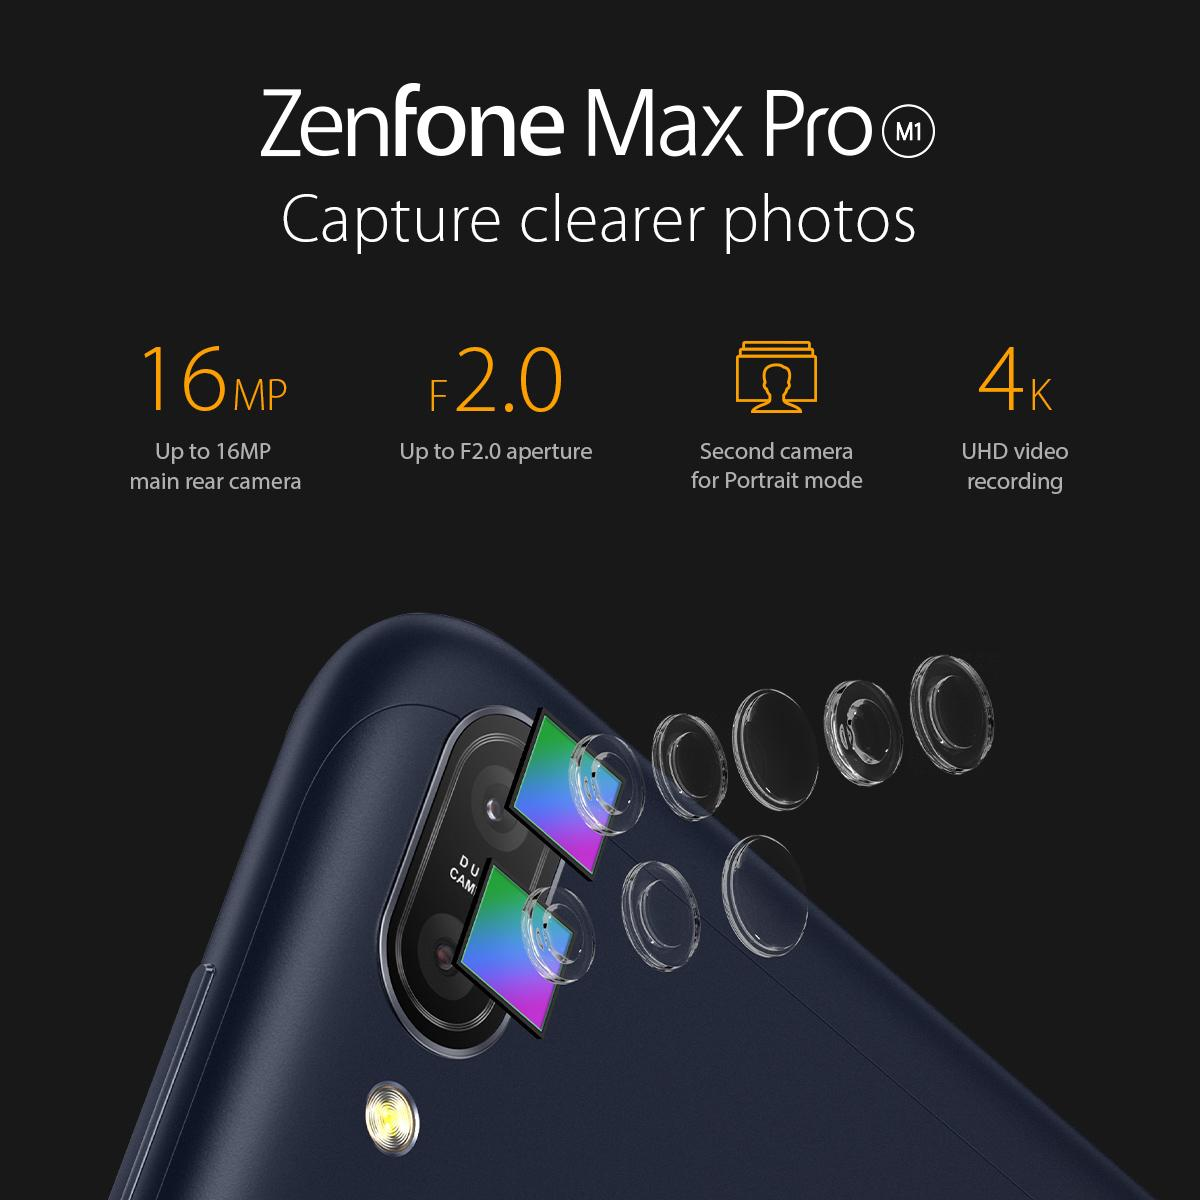 Asus Zenfone Max Pro (M1) Malaysia Review